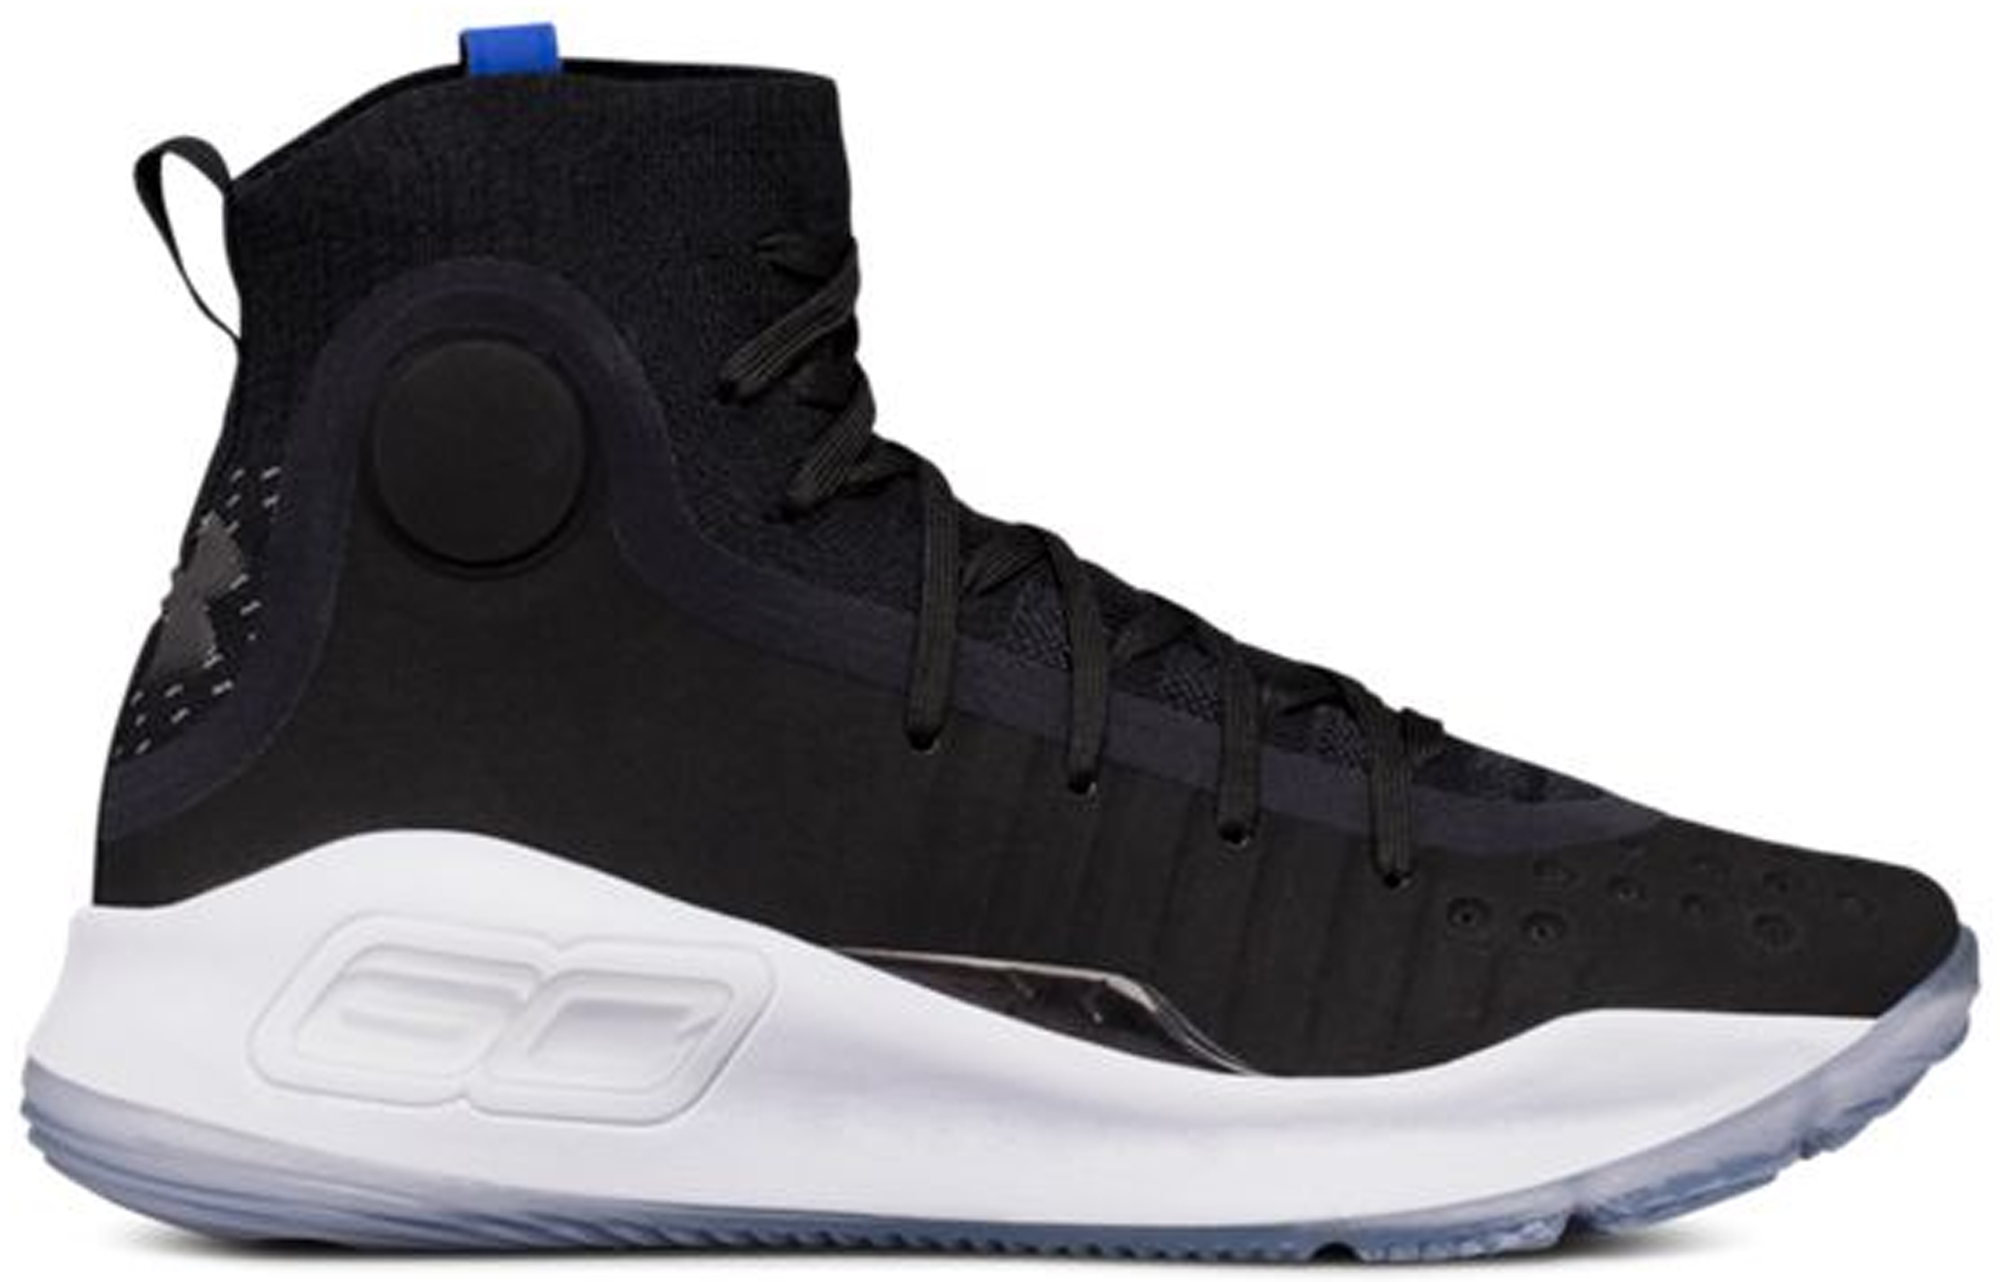 Under Armour Curry 4 Black White (GS